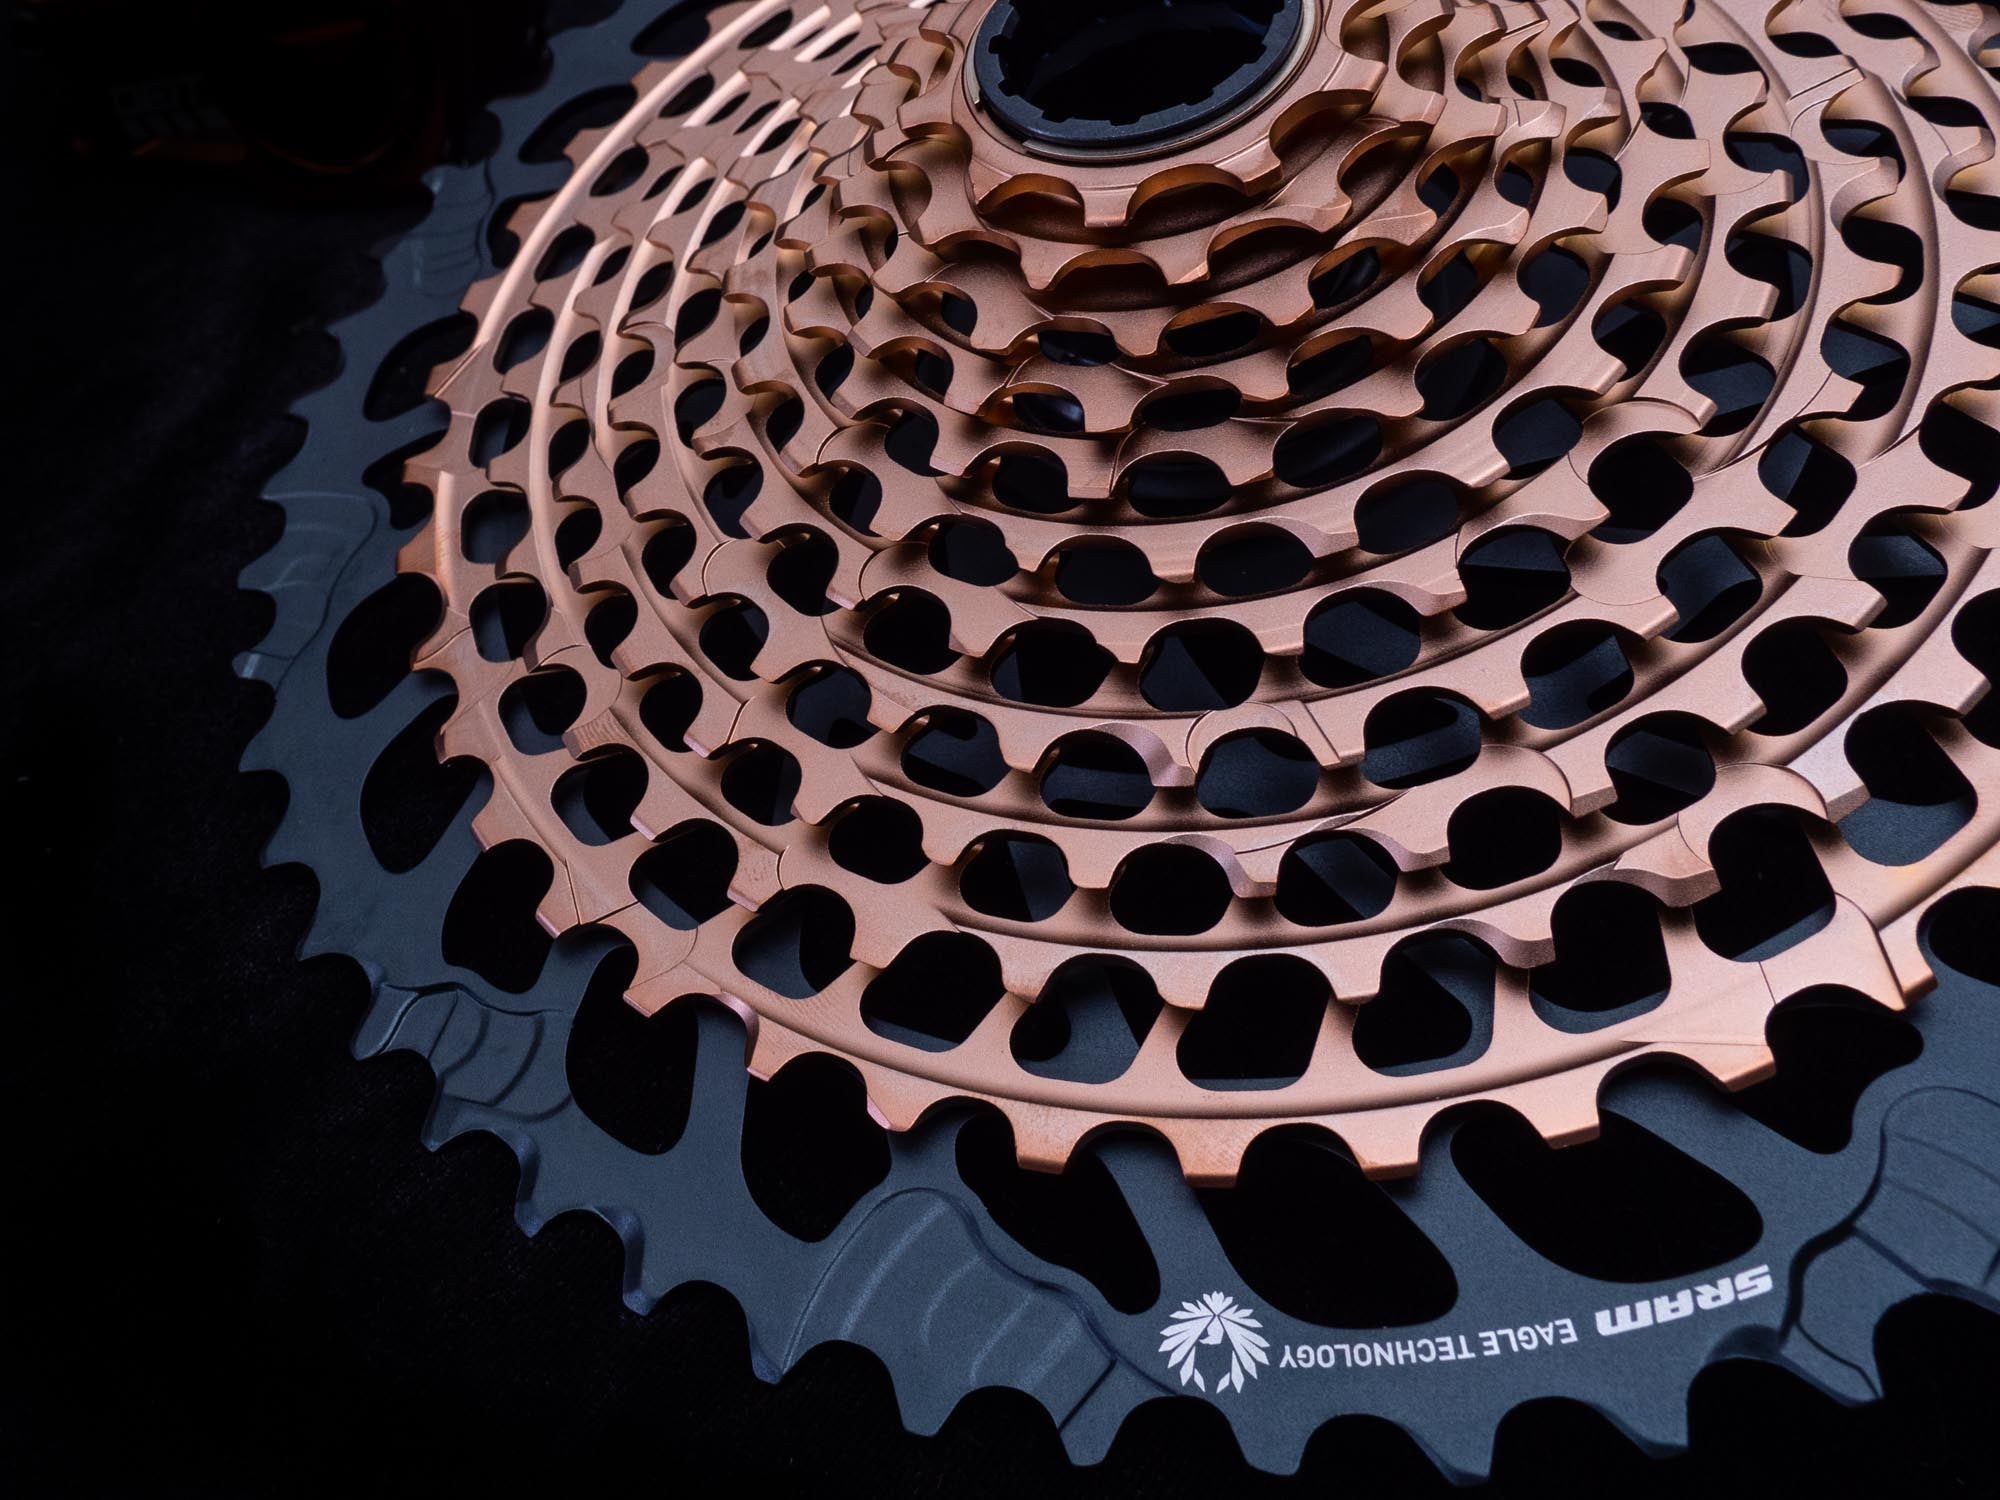 SRAM's gorgeous, lightweight, and highly durable XX1 rear cassette saves more weight over a GX cassette than going from a GX AXS derailleur to an XX1 AXS derailleur does, and for less money.